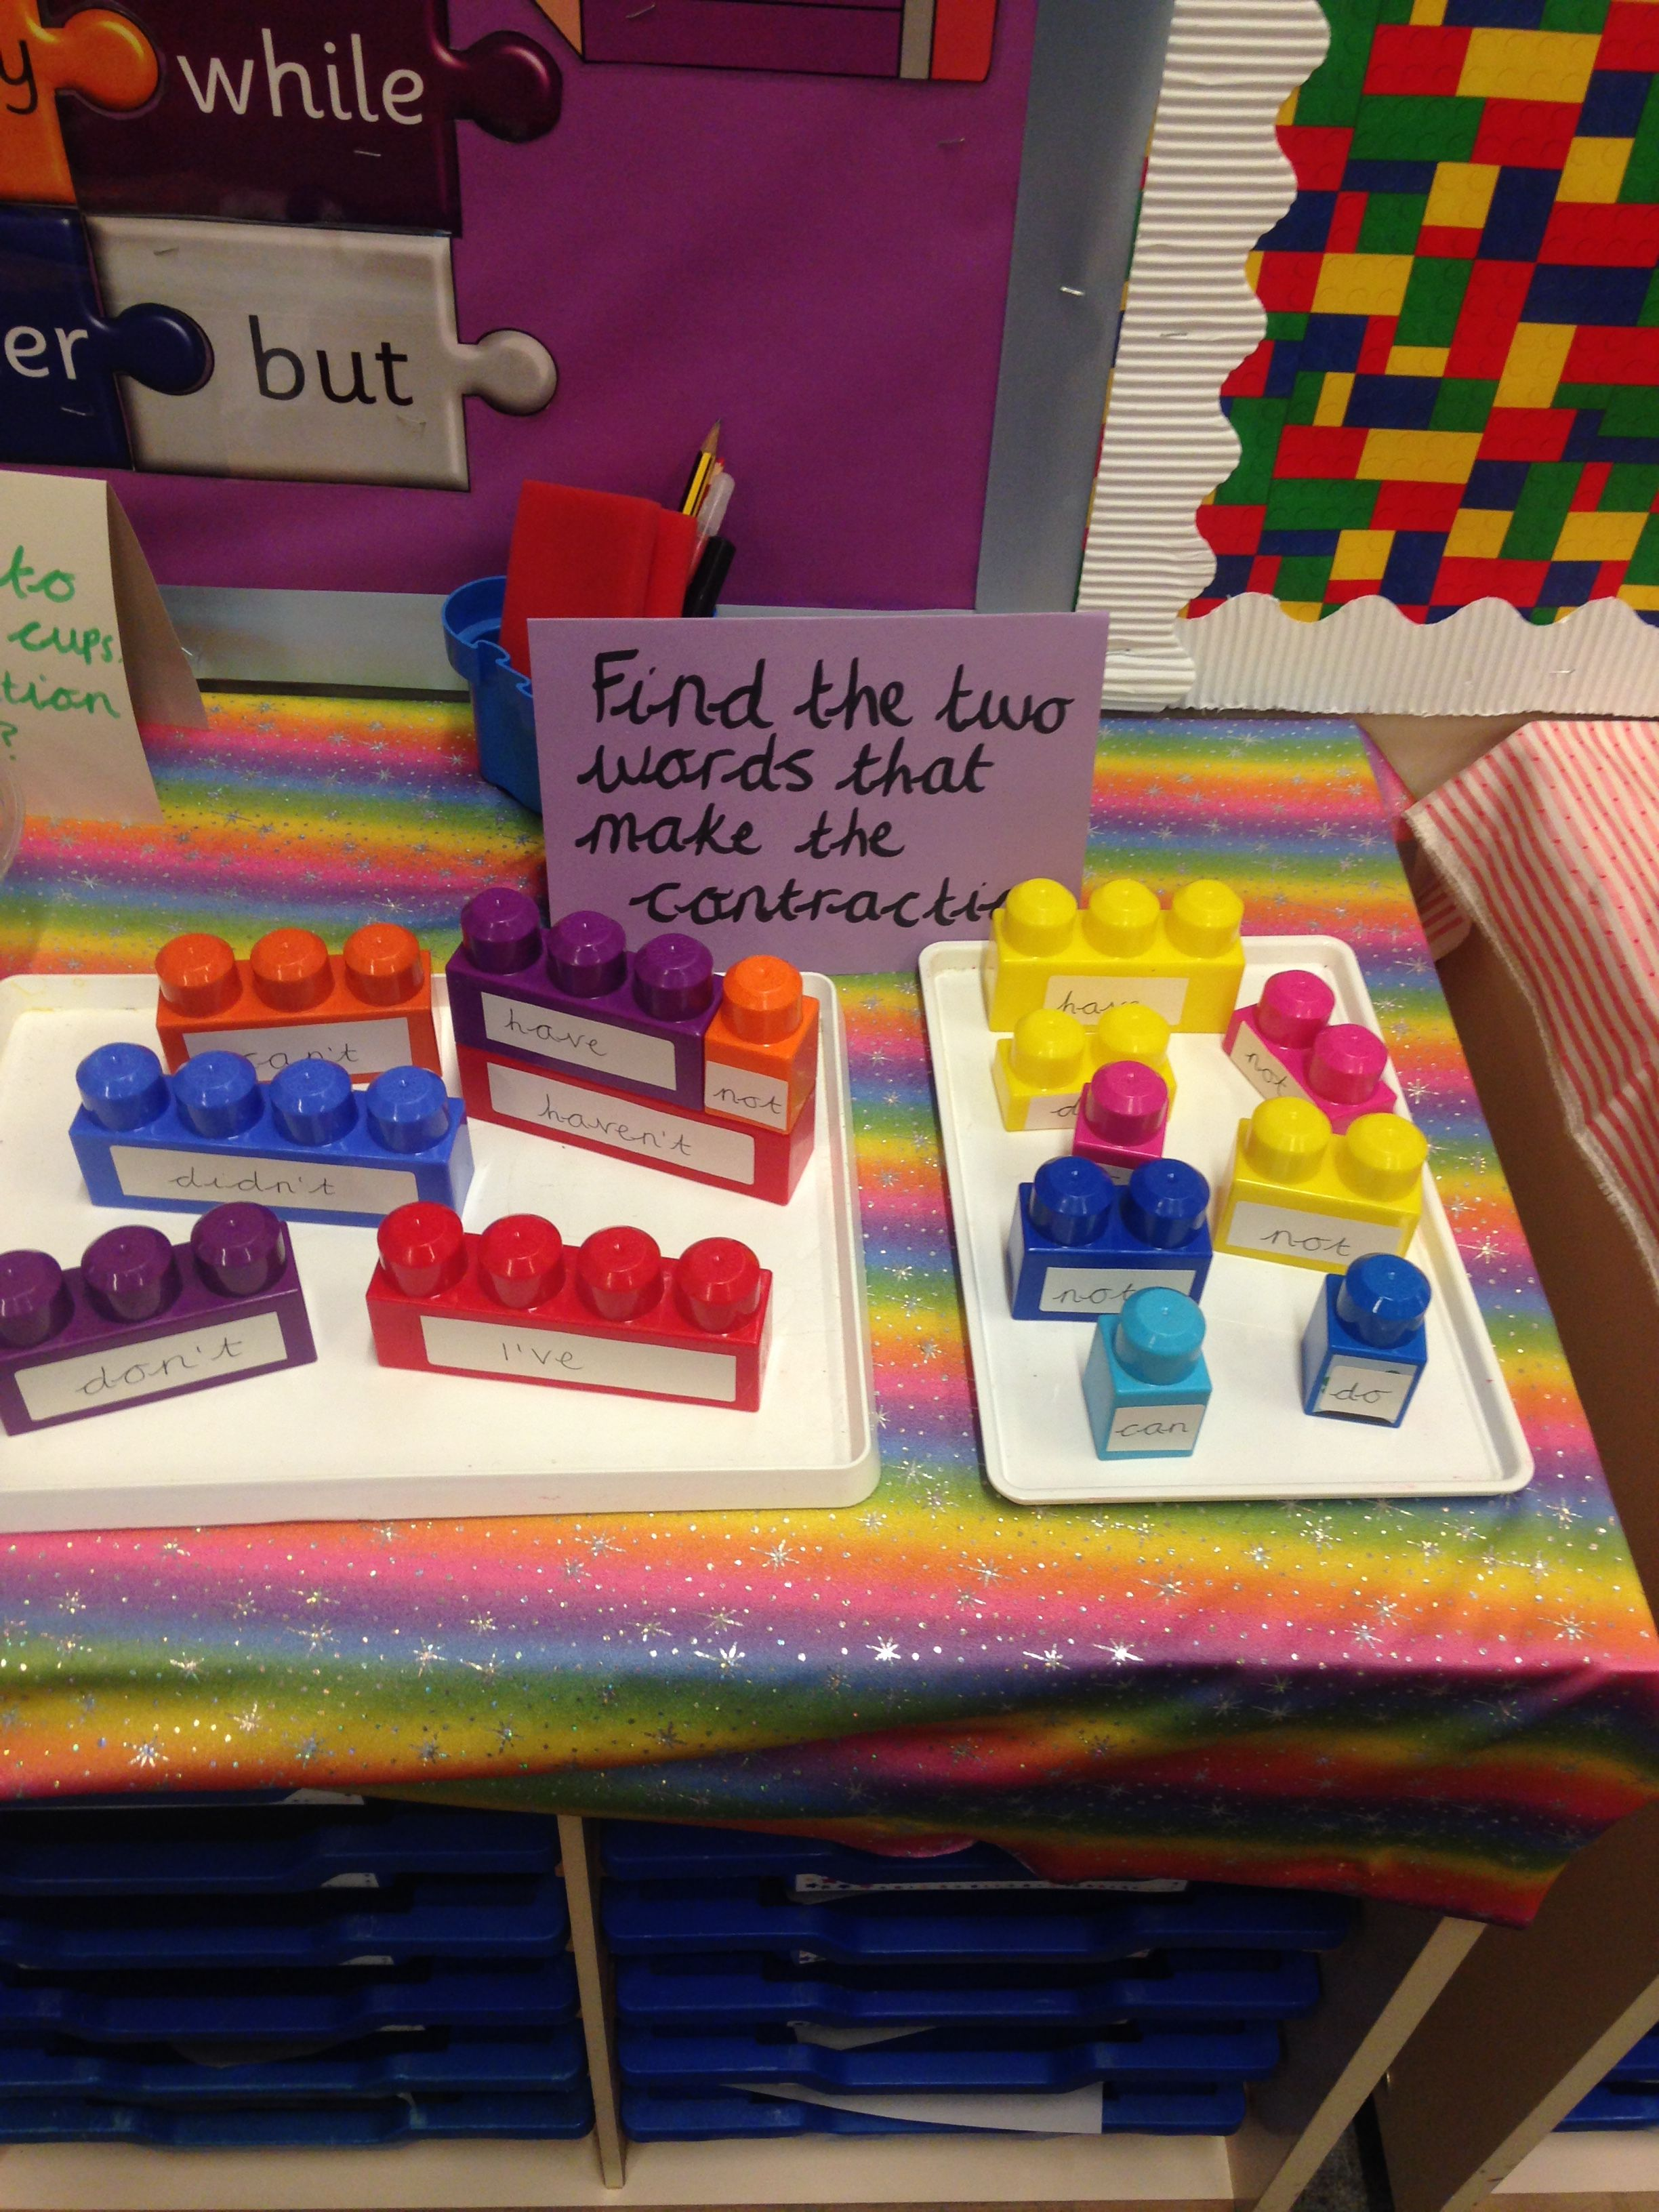 Contractions Interactive Display For English Spelling